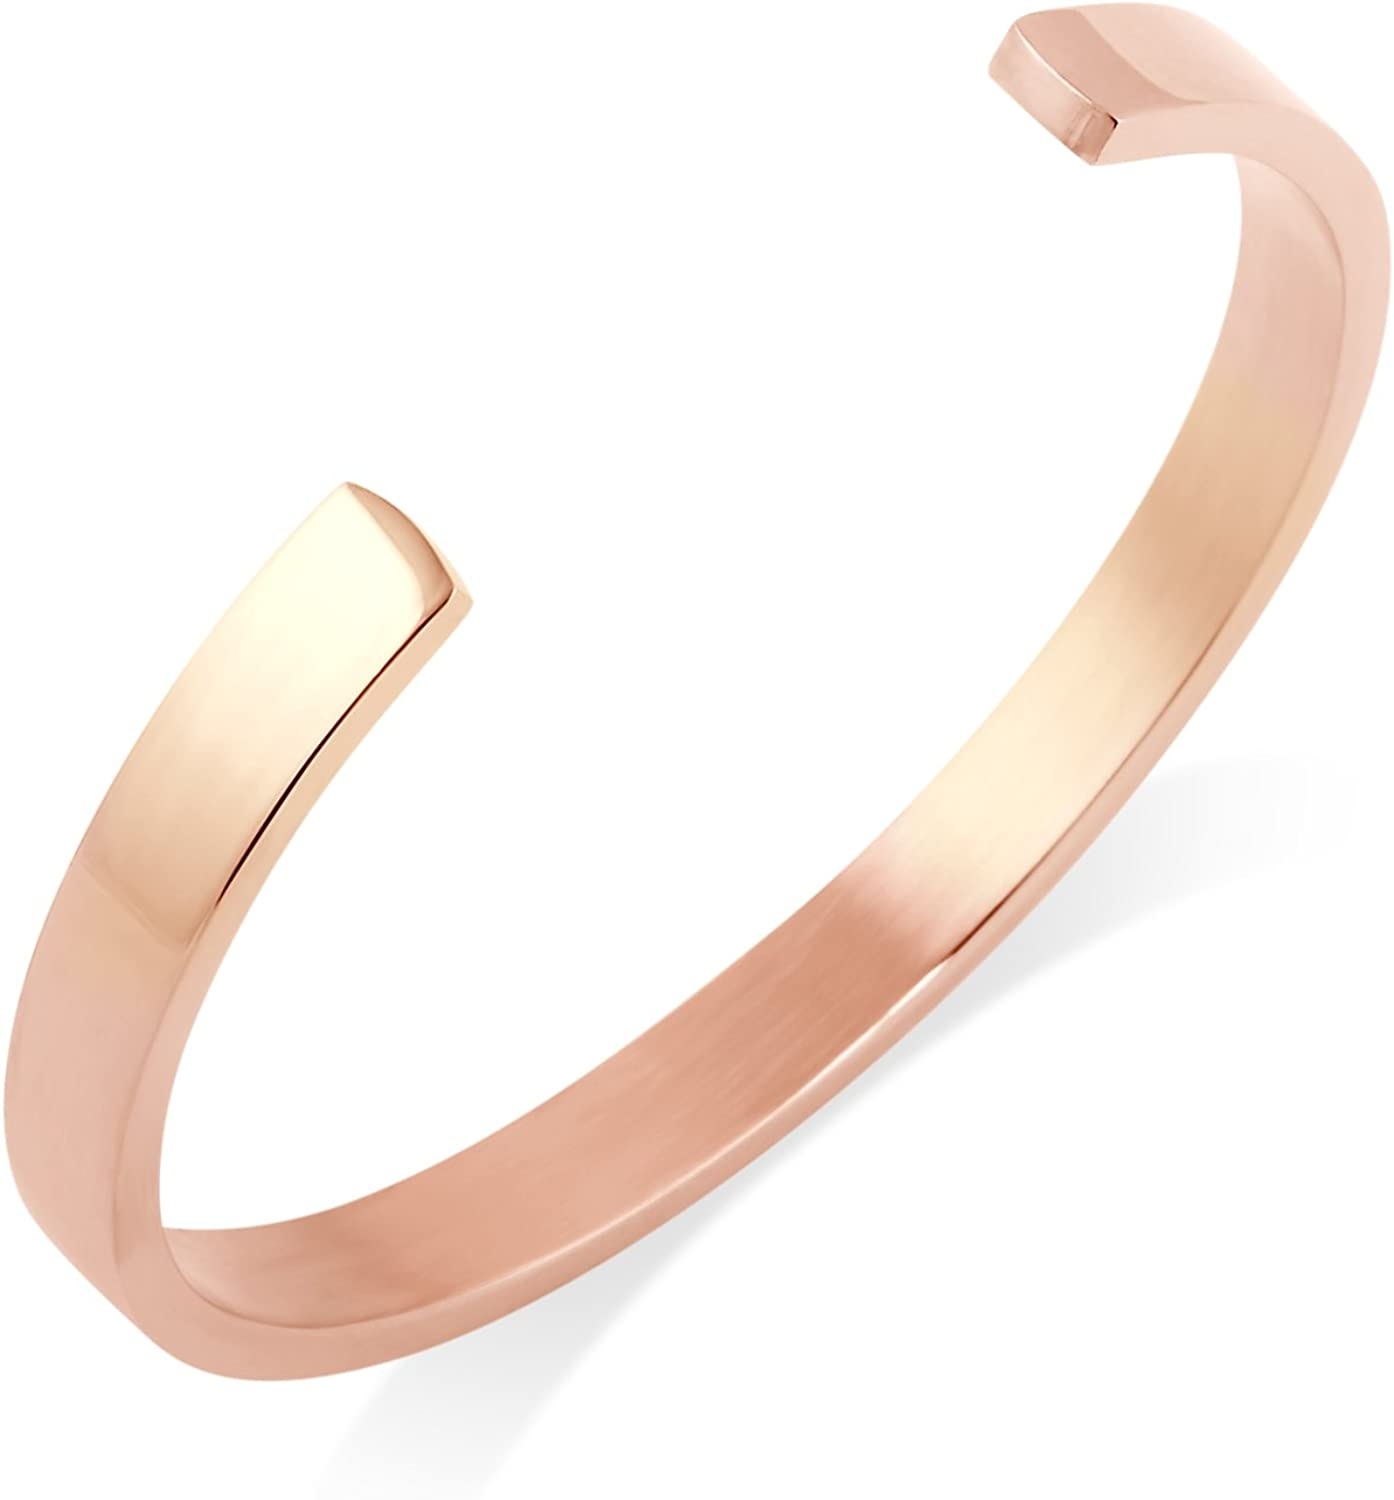 Toi&Moi C Cuff Bangle Bracelet in Surgical Stainless Steel